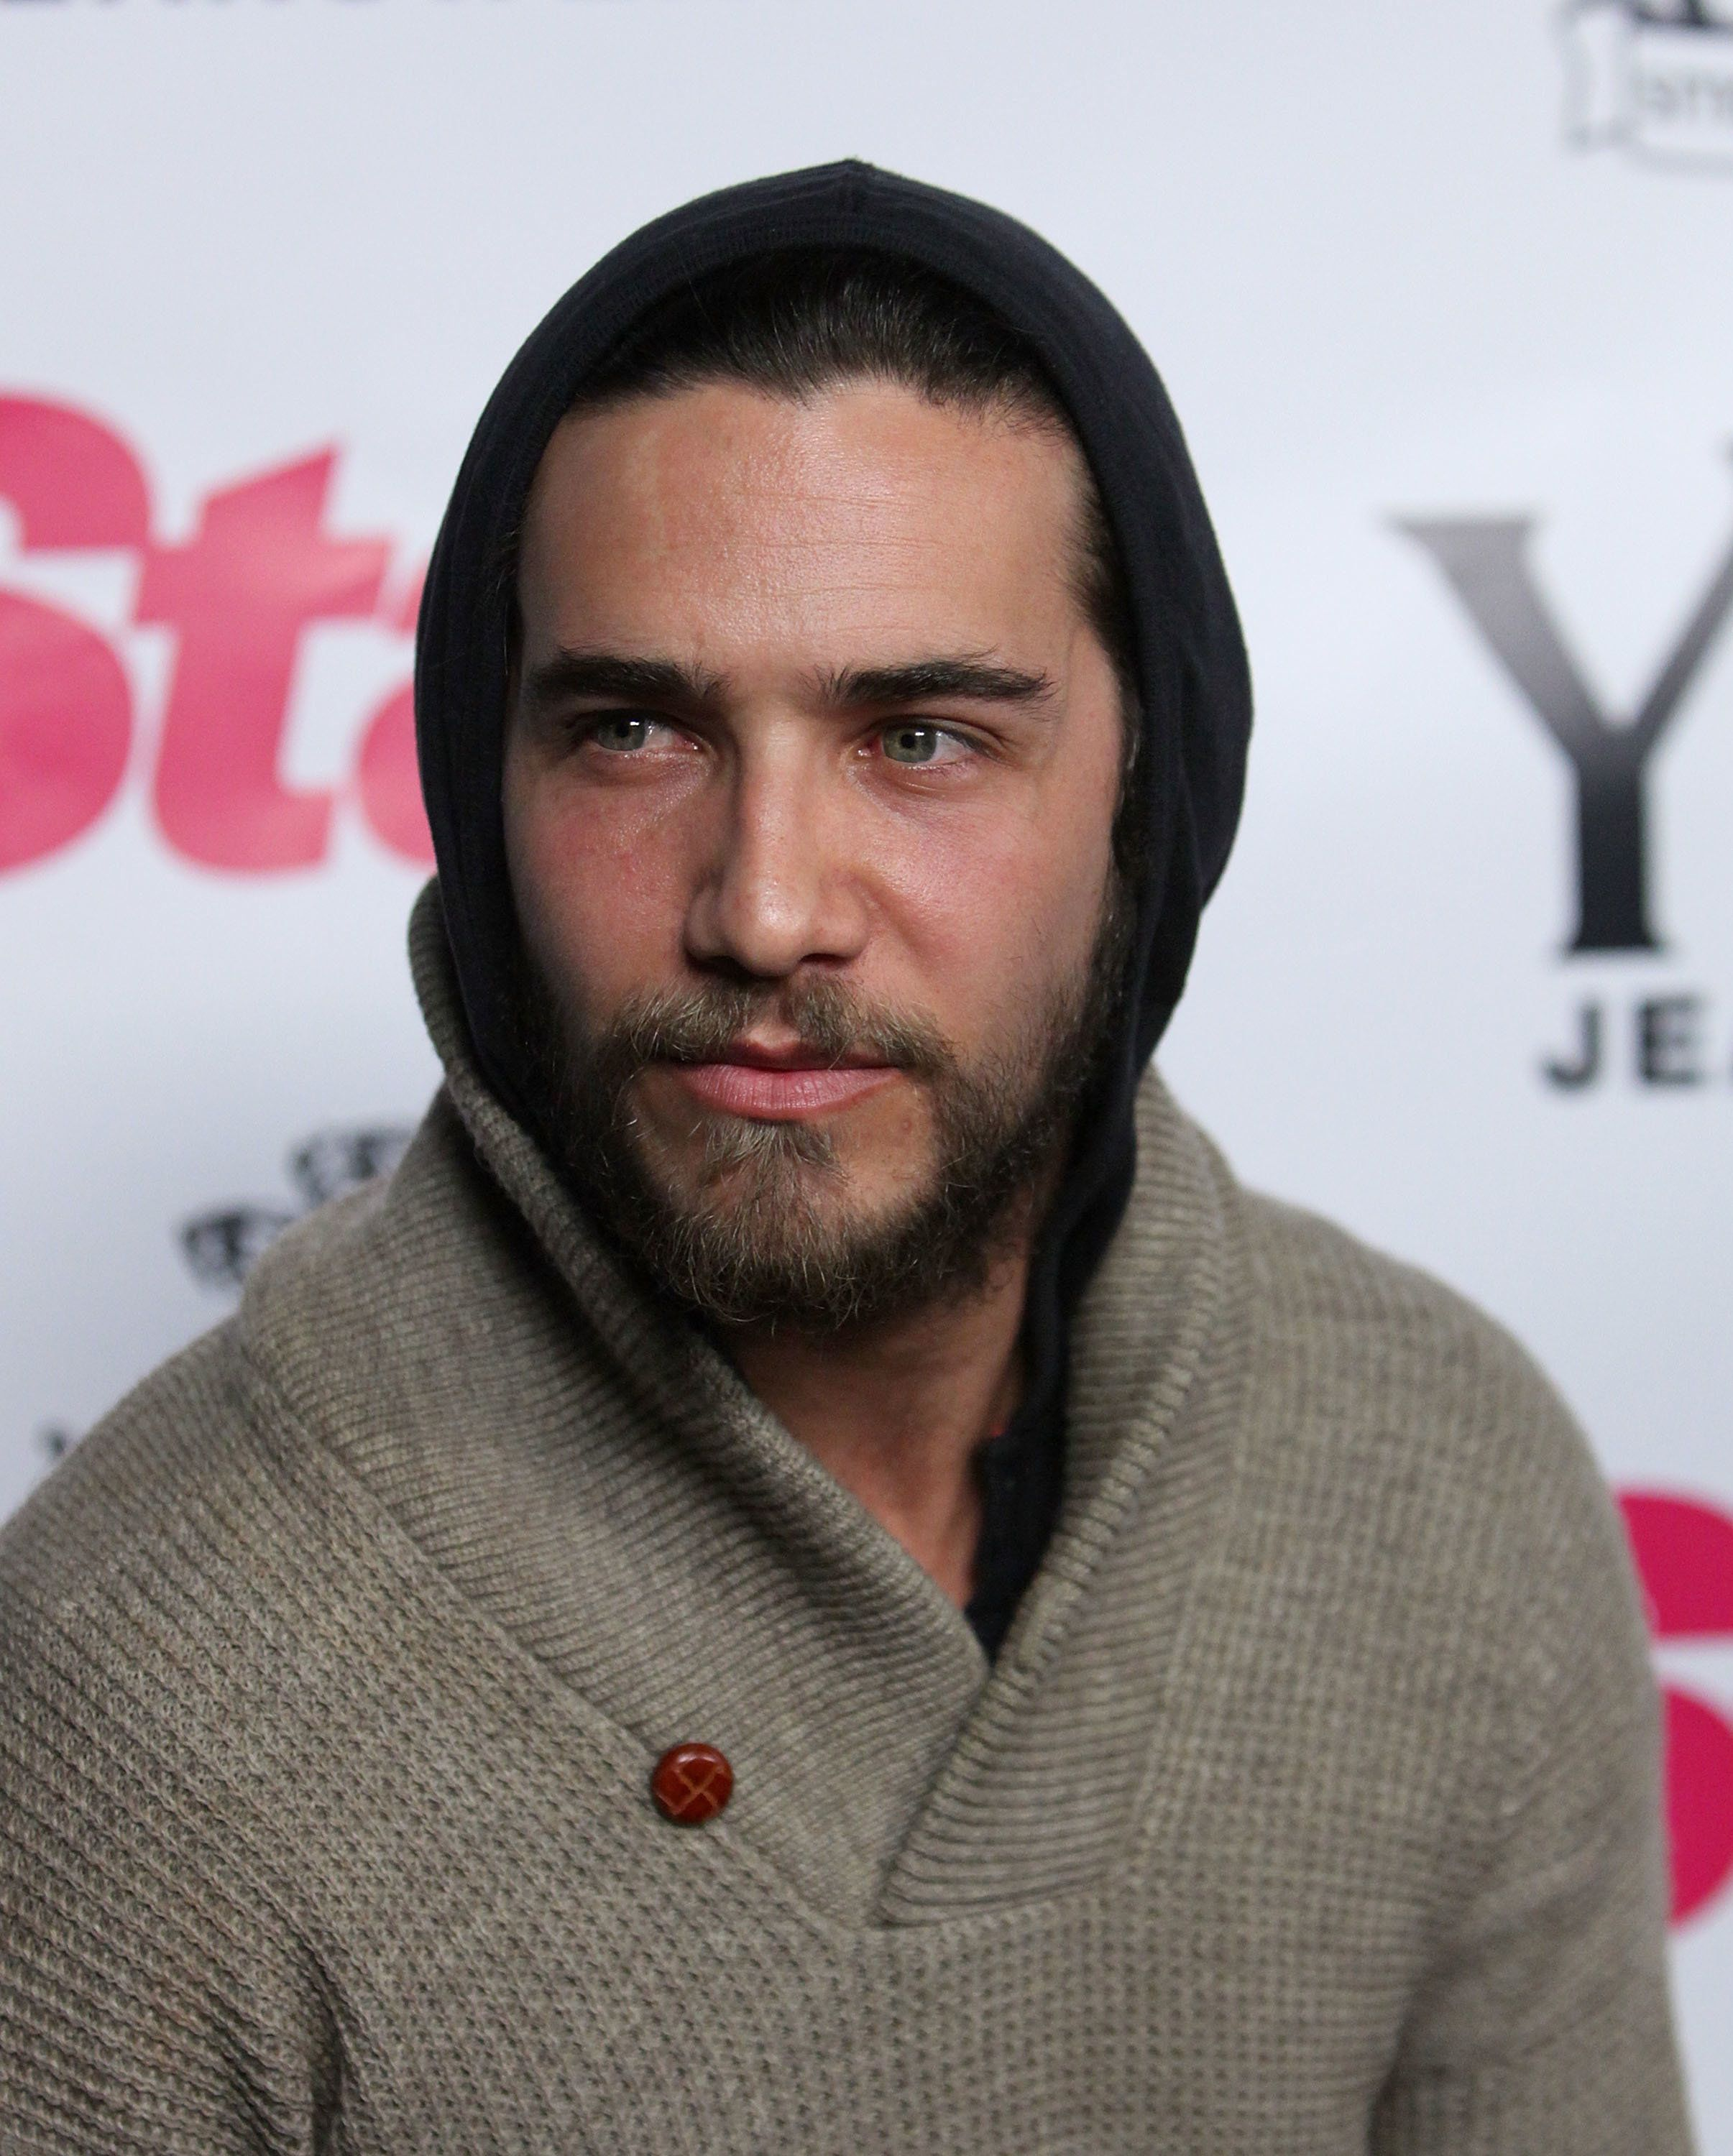 WEST HOLLYWOOD, CA - MARCH 11:  Actor Justin Bobby Brescia arrives at Star Magazine's Young Hollywood Issue party at the Apple Restaurant & Lounge on March 11, 2009 in West Hollywood, California.  (Photo by Jesse Grant/WireImage)